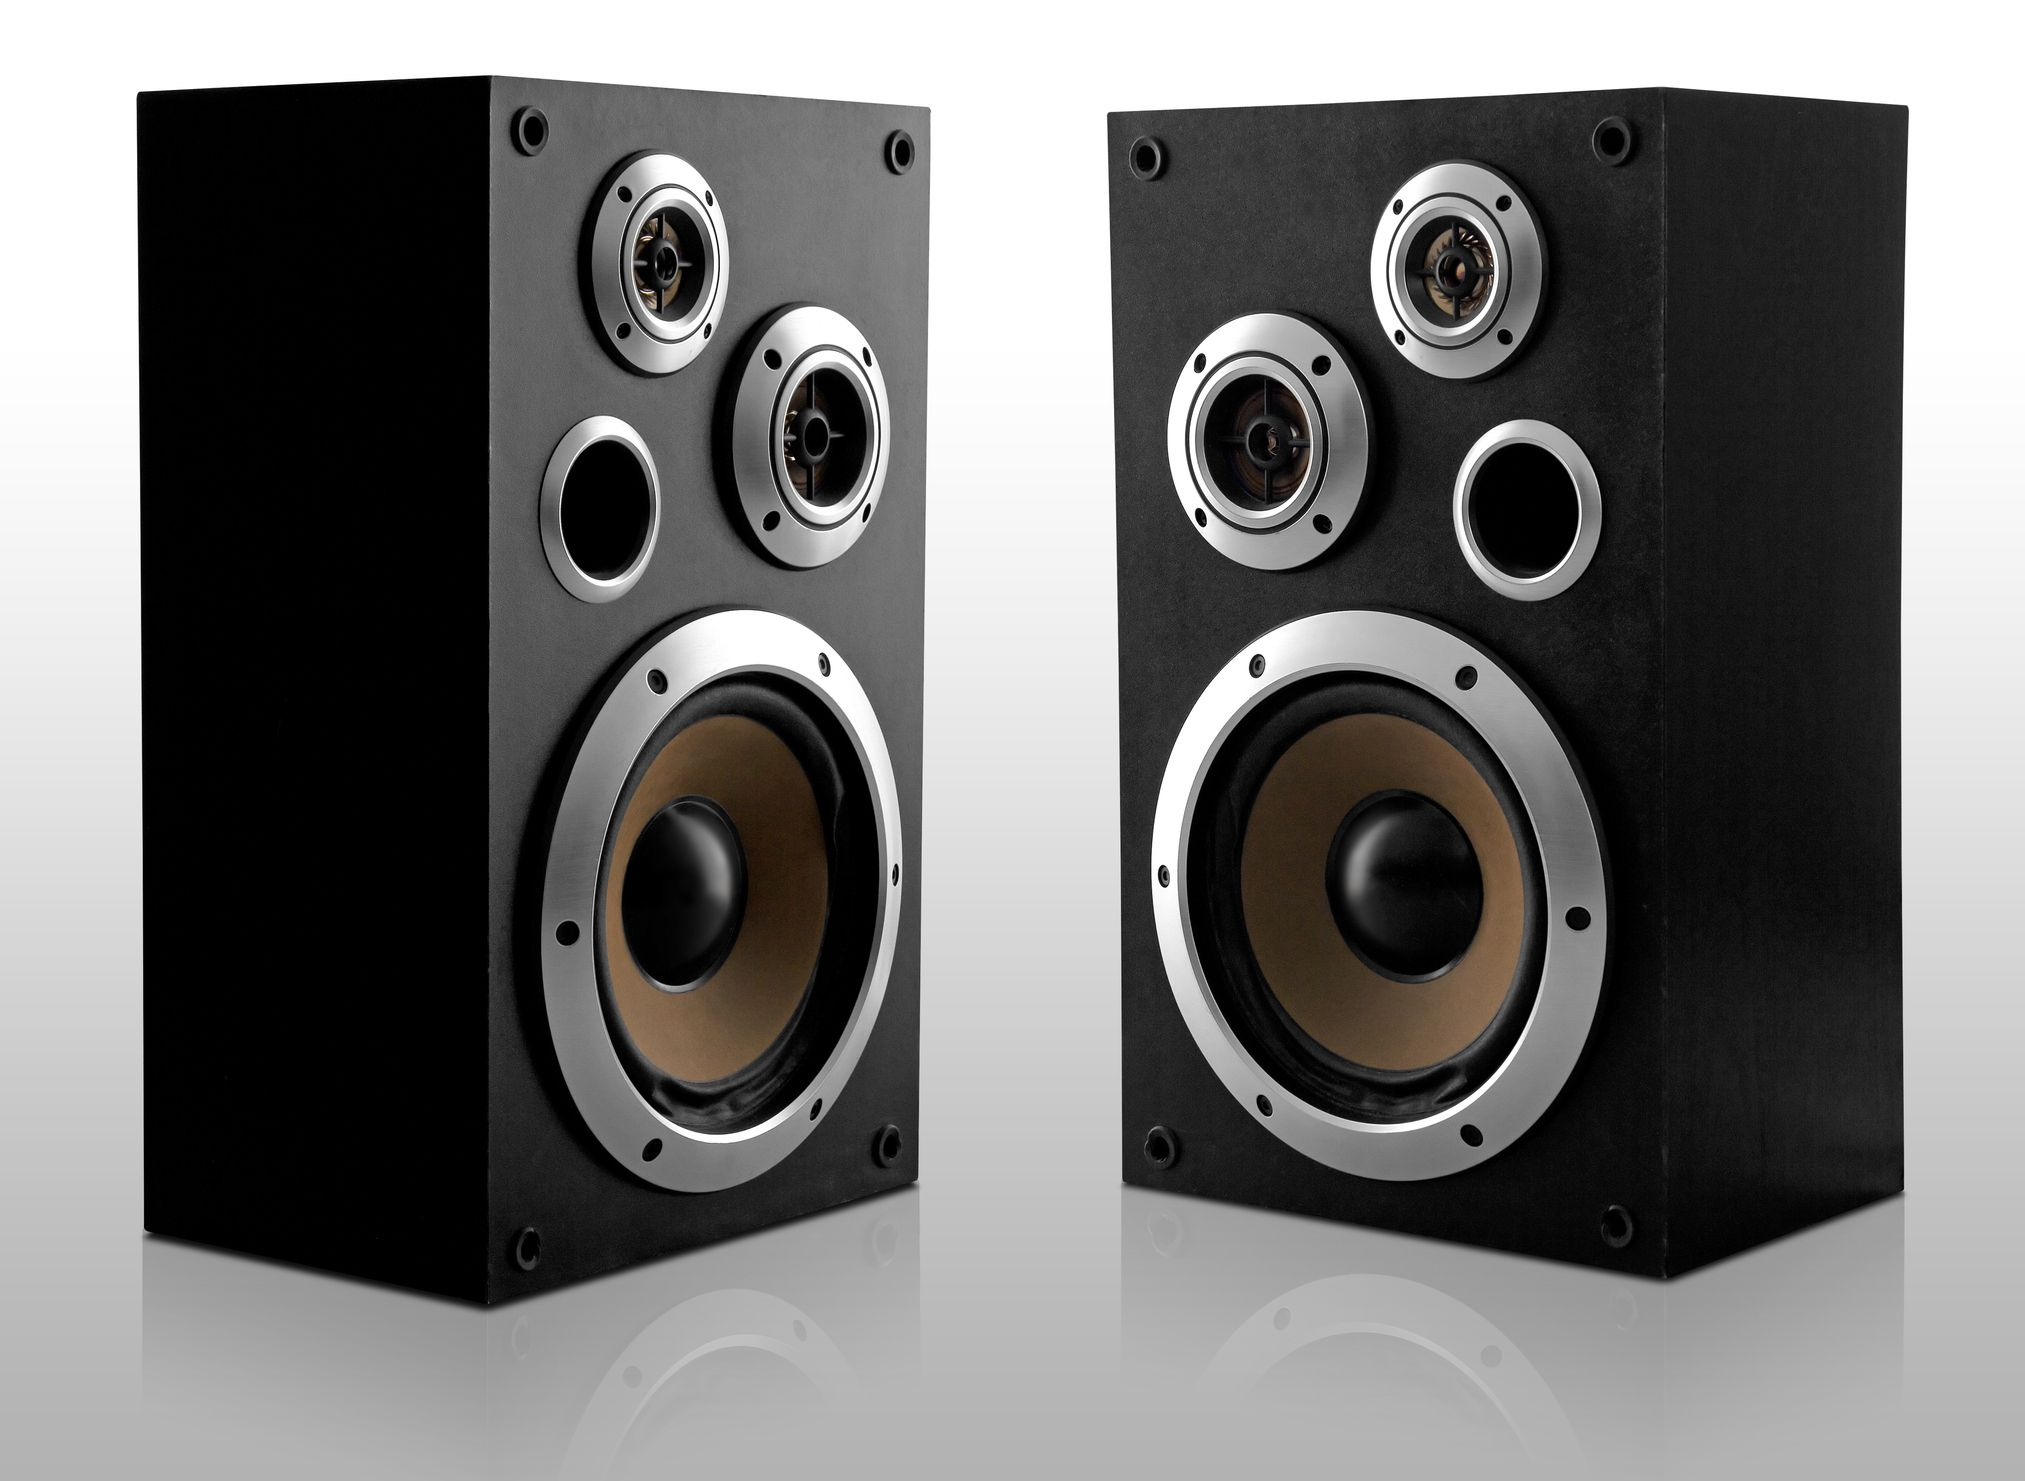 Uncategorized What Is The Best Way To Clean Flat Screen Tv how to clean a flat screen tv pair of stereo speakers with exposed speaker cones turned slightly inwards